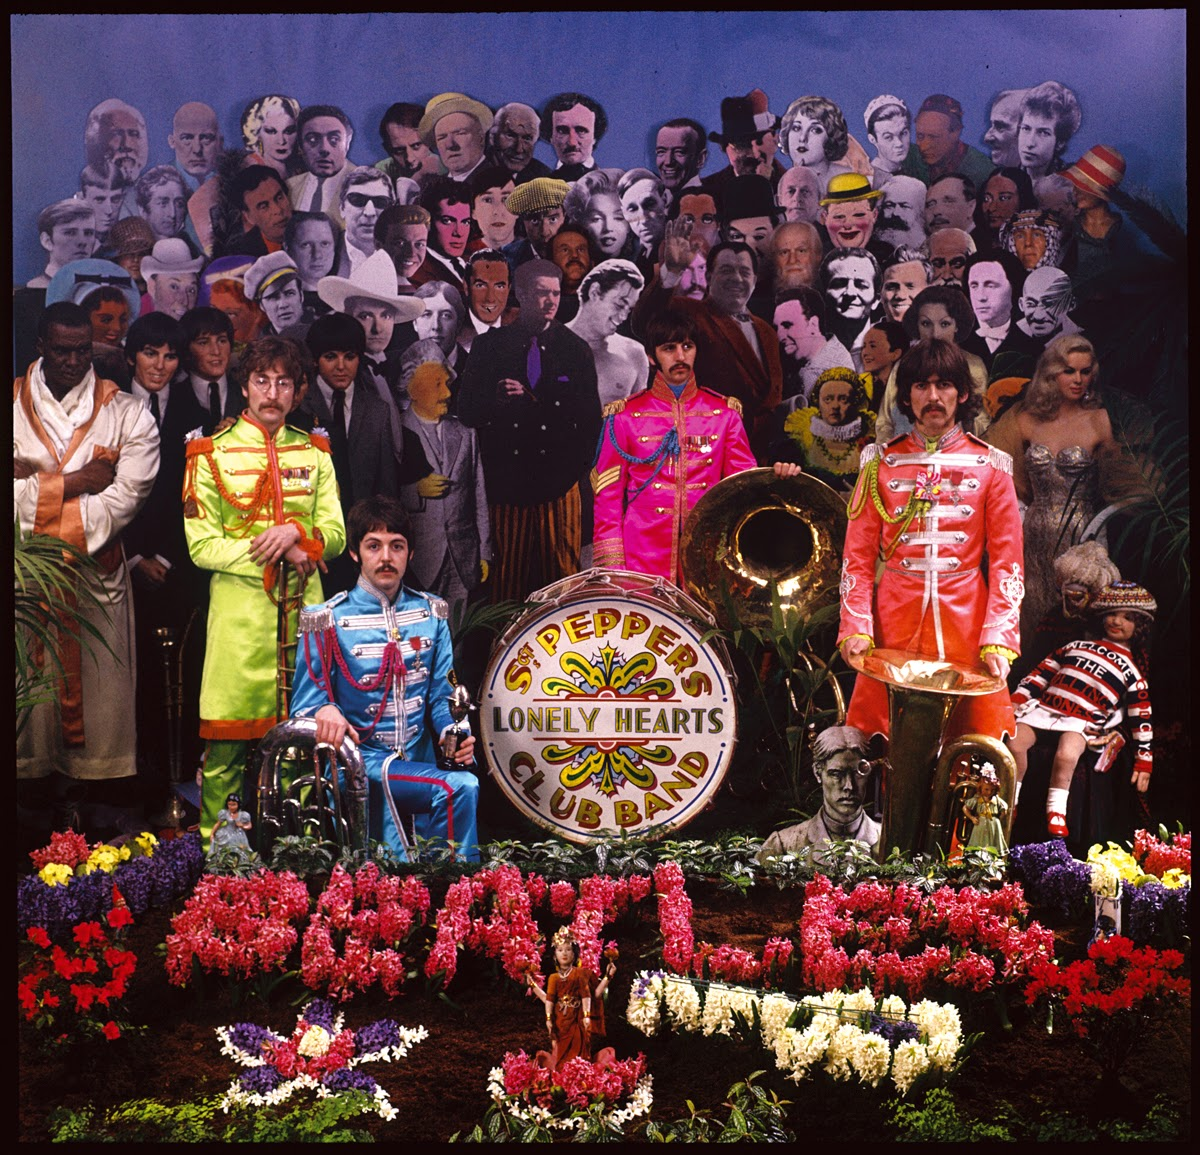 Making The Cover for Sgt Pepper's Lonely Hearts Club Band (10).jpg